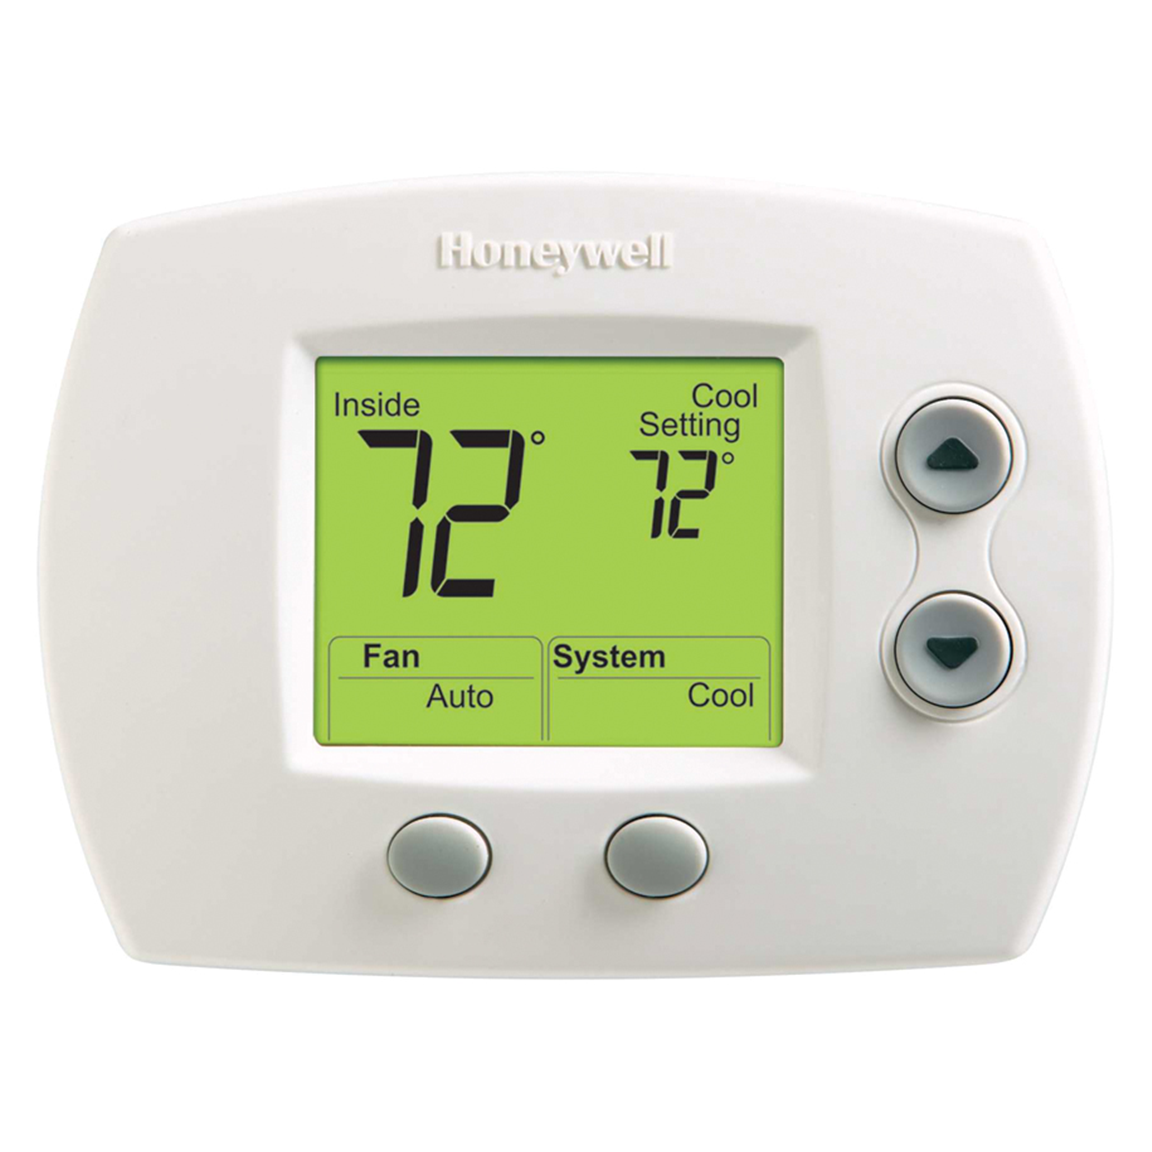 Honeywell Thermometer Instructions User Guide Manual That Easy To 5000 Thermostat Instruction Enthusiast Wiring Rh Rasalibre Co Programmable Thermostats